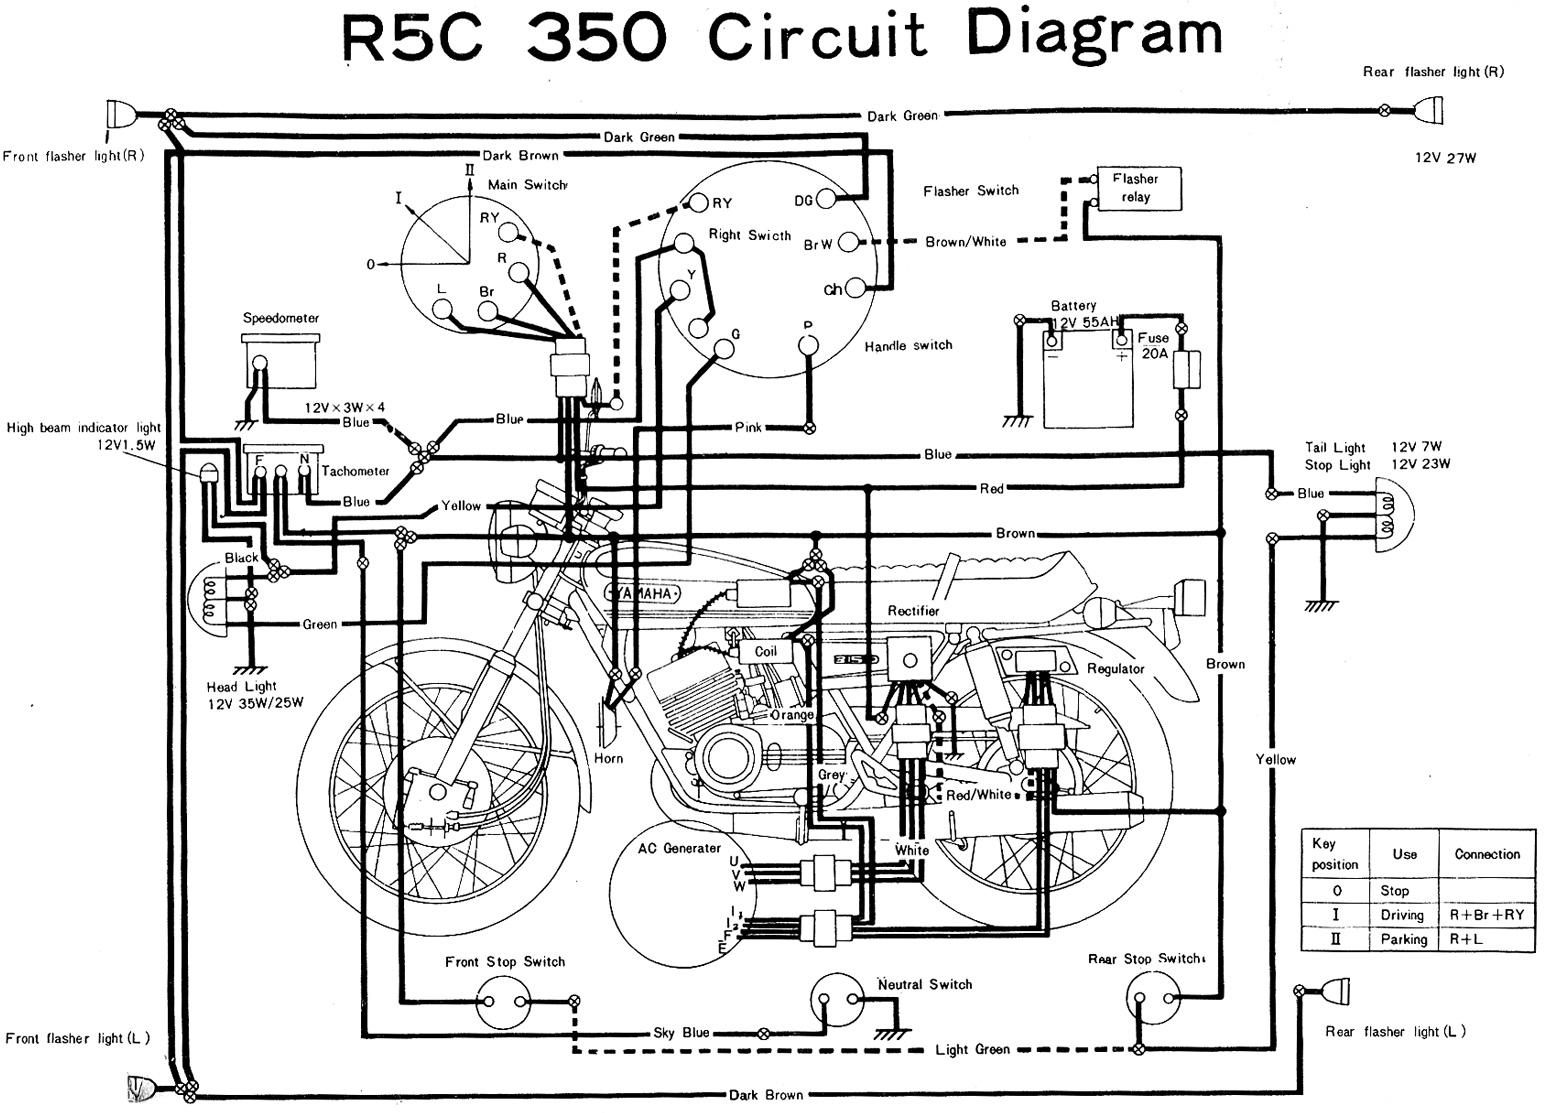 Yamaha RD350 R5C Wiring Diagram Evan Fell Motorcycle WorksEvan